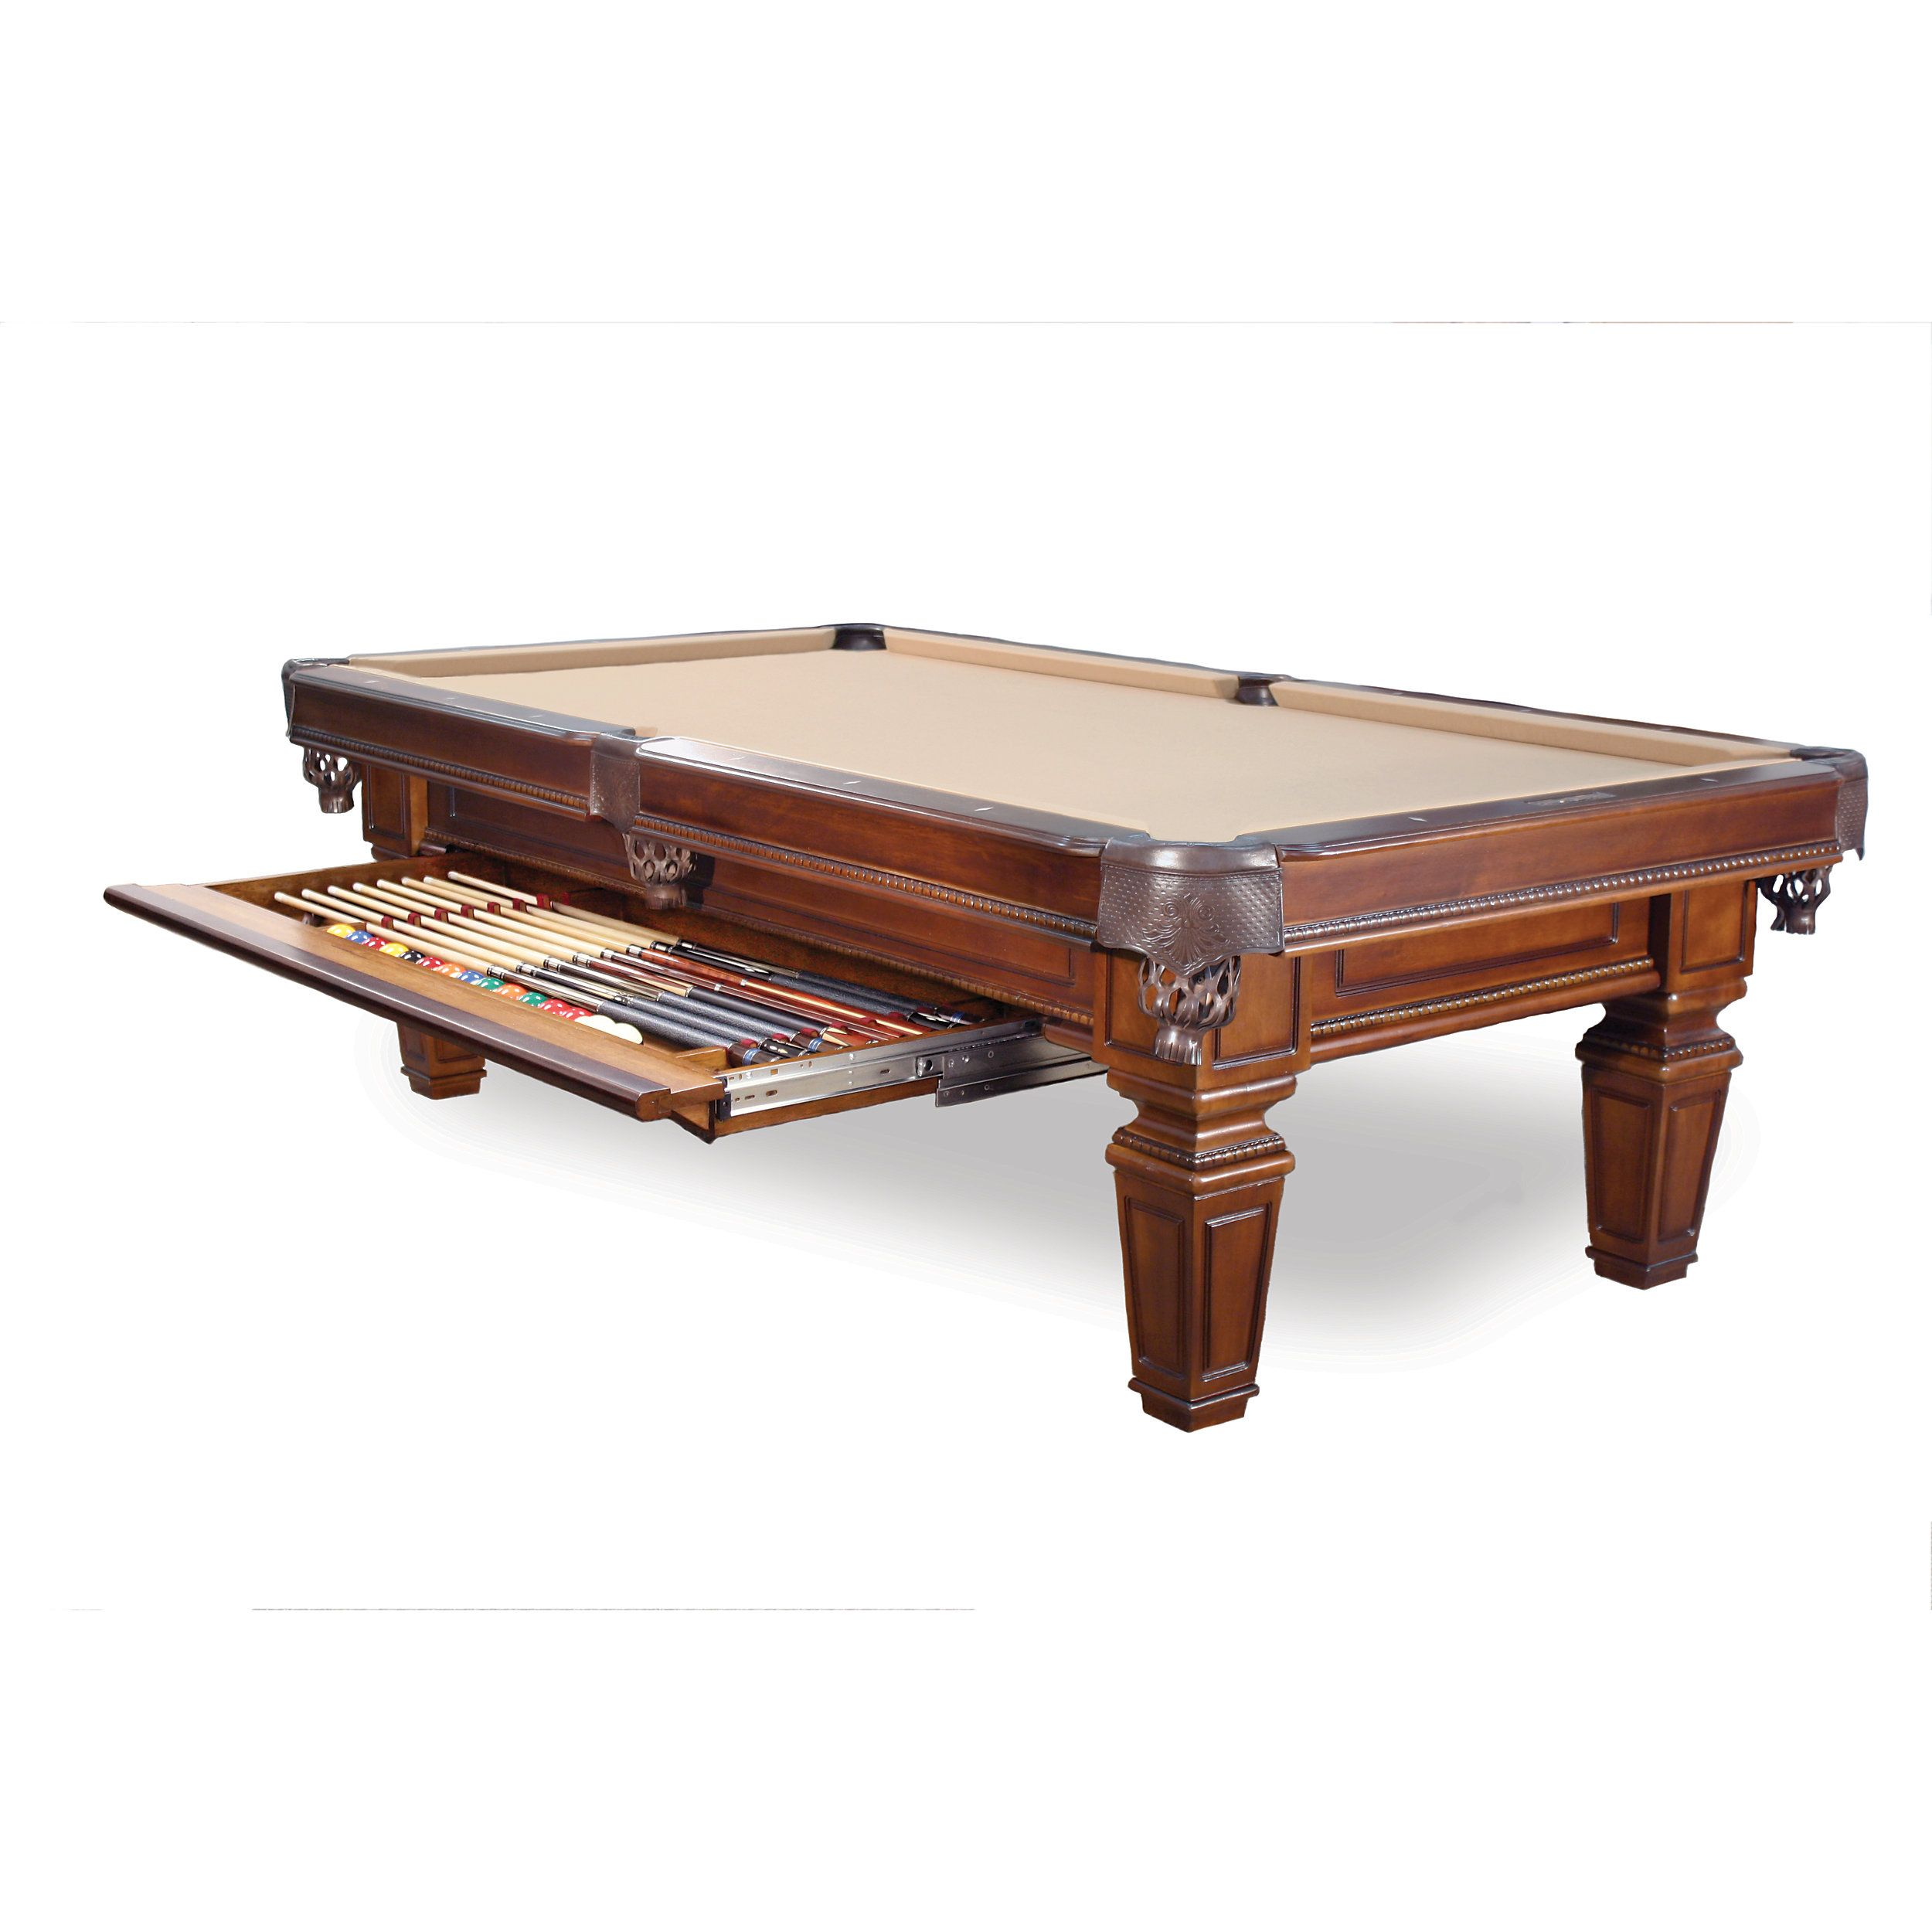 belfast pool table | pool tables | pinterest | billardtisch, Esstisch ideennn